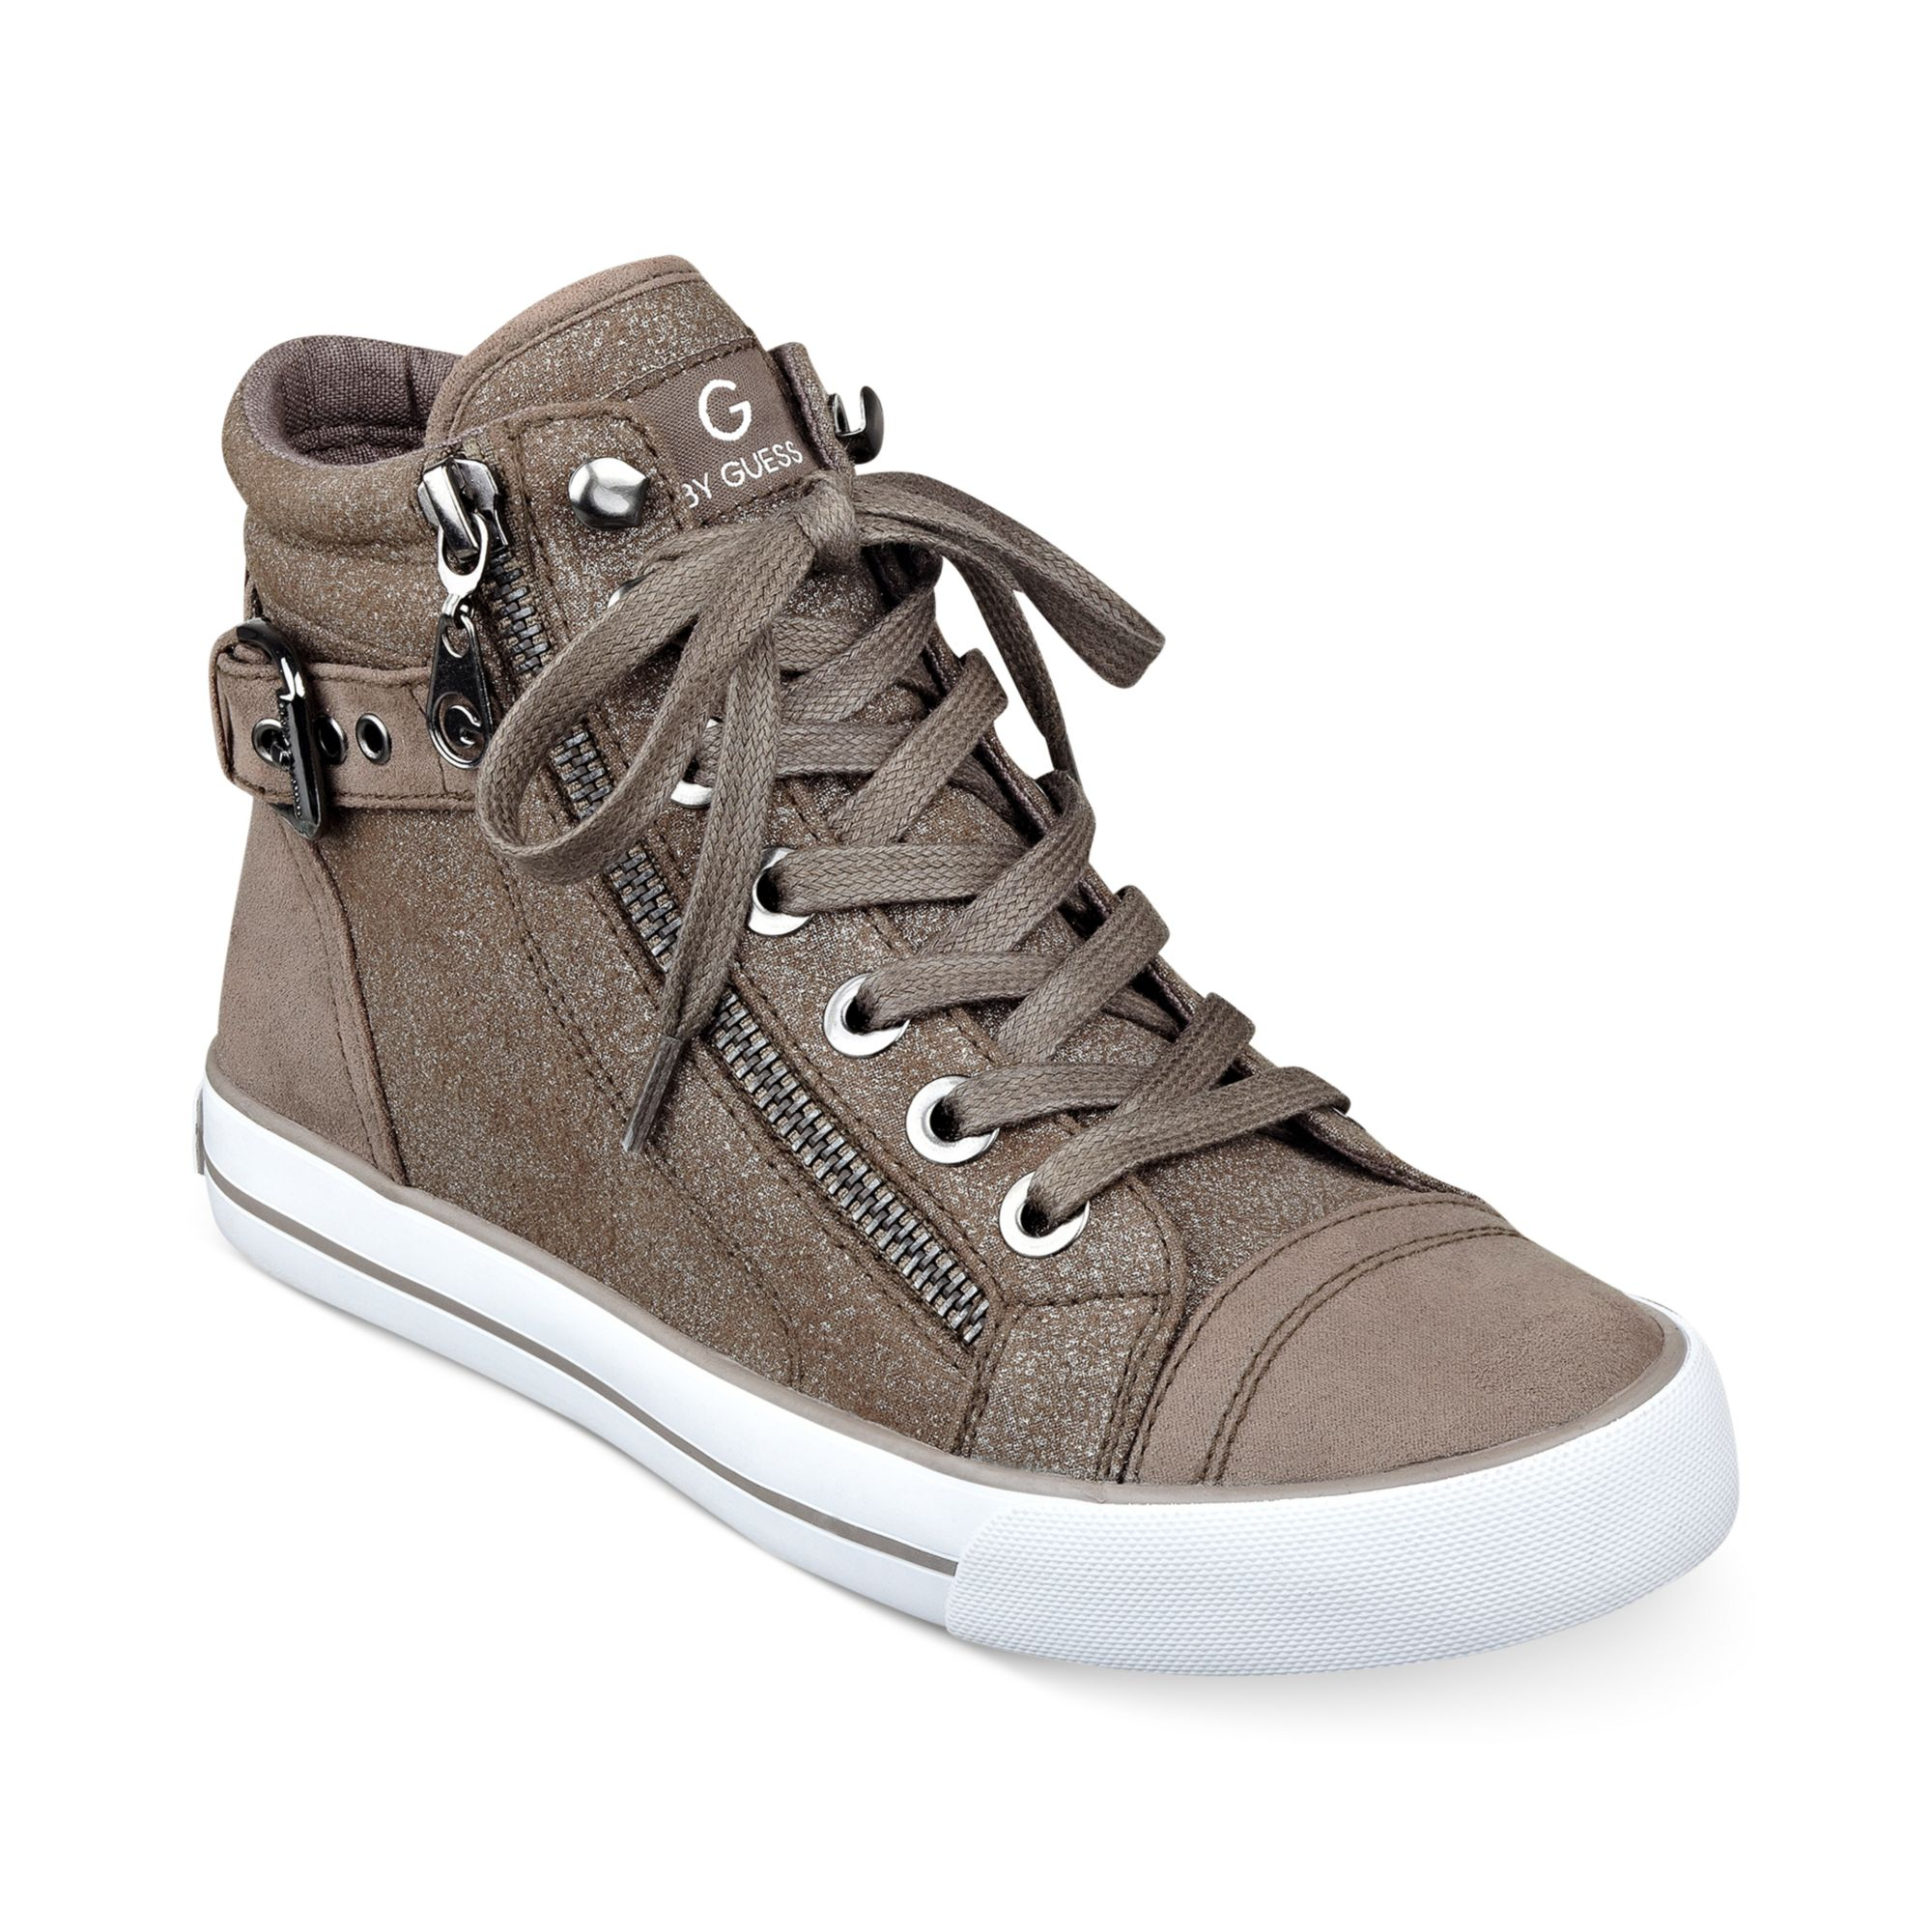 89de6a58a748 Lyst - G by Guess Womens Olama High Top Sneakers in Gray